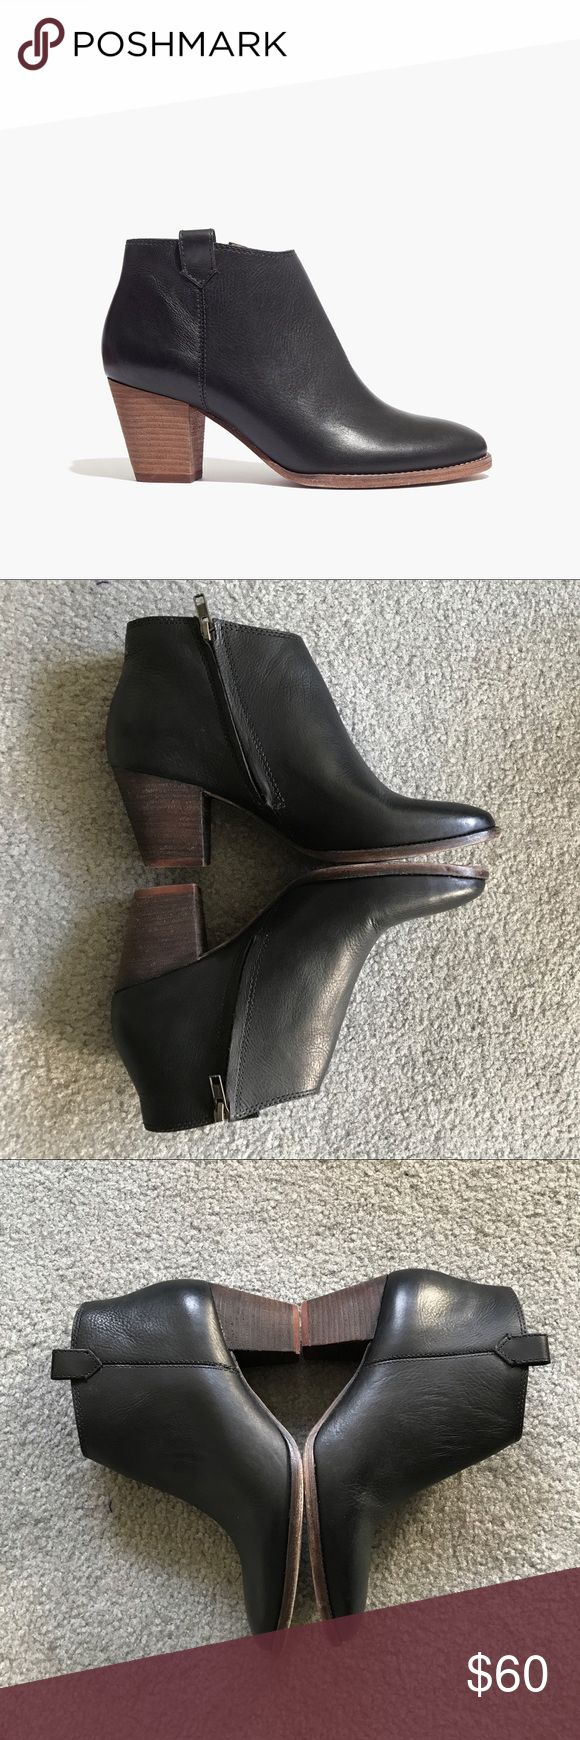 Madewell black booties Adorable and classic. I tried to use a sharpie on the heel to darken the brown but did a bit of removal before posting. It's exactly as they appear in the images! I've reduced the pricing for that reason. The leather and interiors are in great condition. Madewell Shoes Heeled Boots